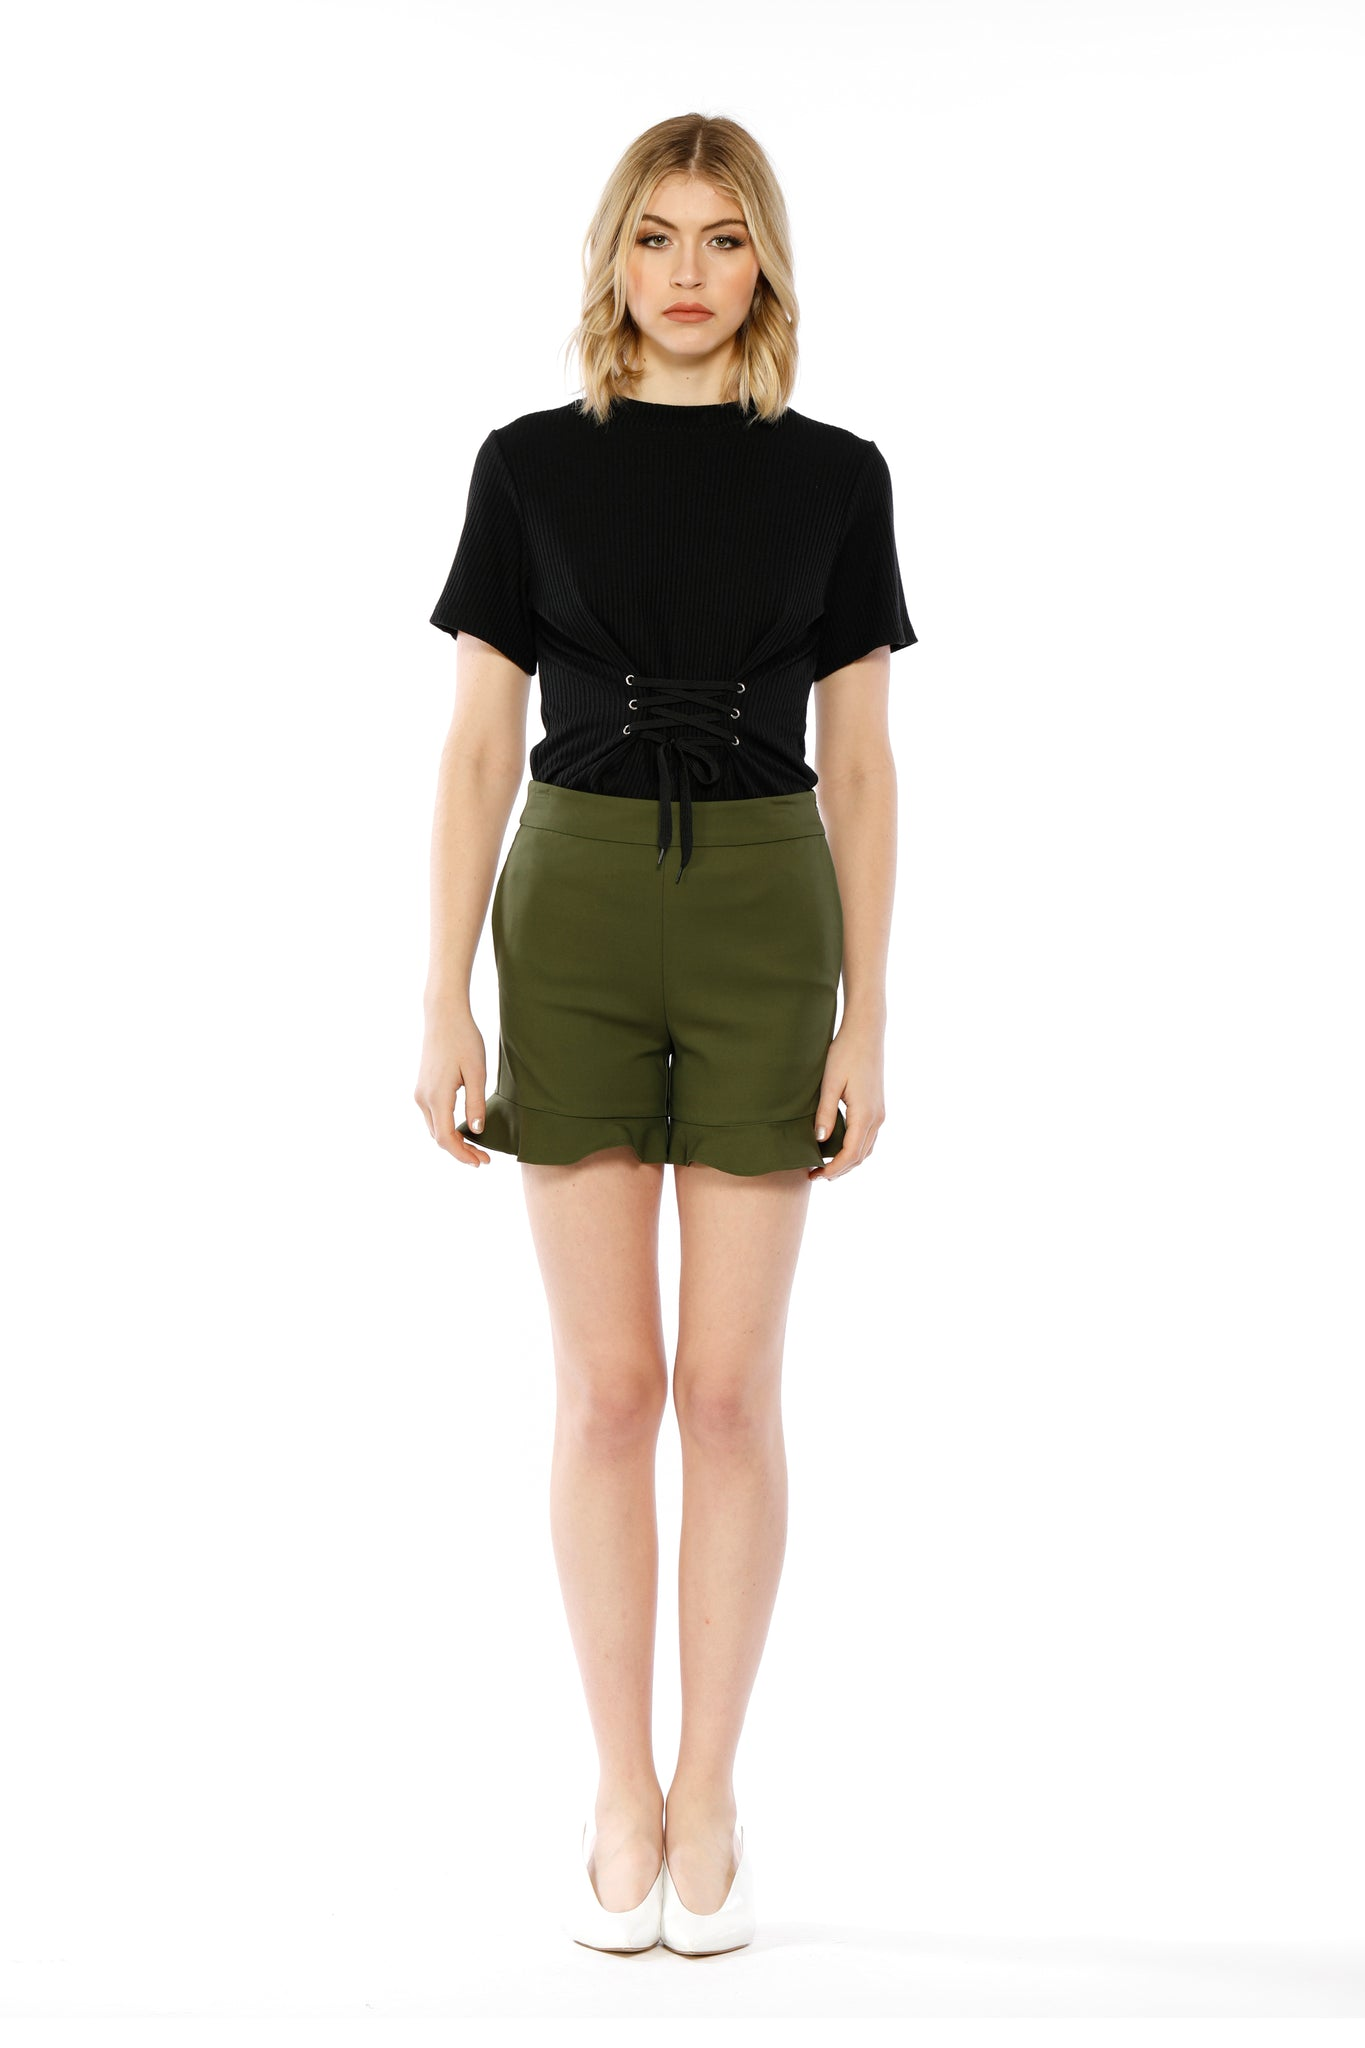 Front view of Lillian Short, sleek olive short shorts with flared, ruffled bottoms. Shell is 95% Cotton and 5% Spandex, Lining is 80% Polyester and 20% Cotton - and Machine-washable.